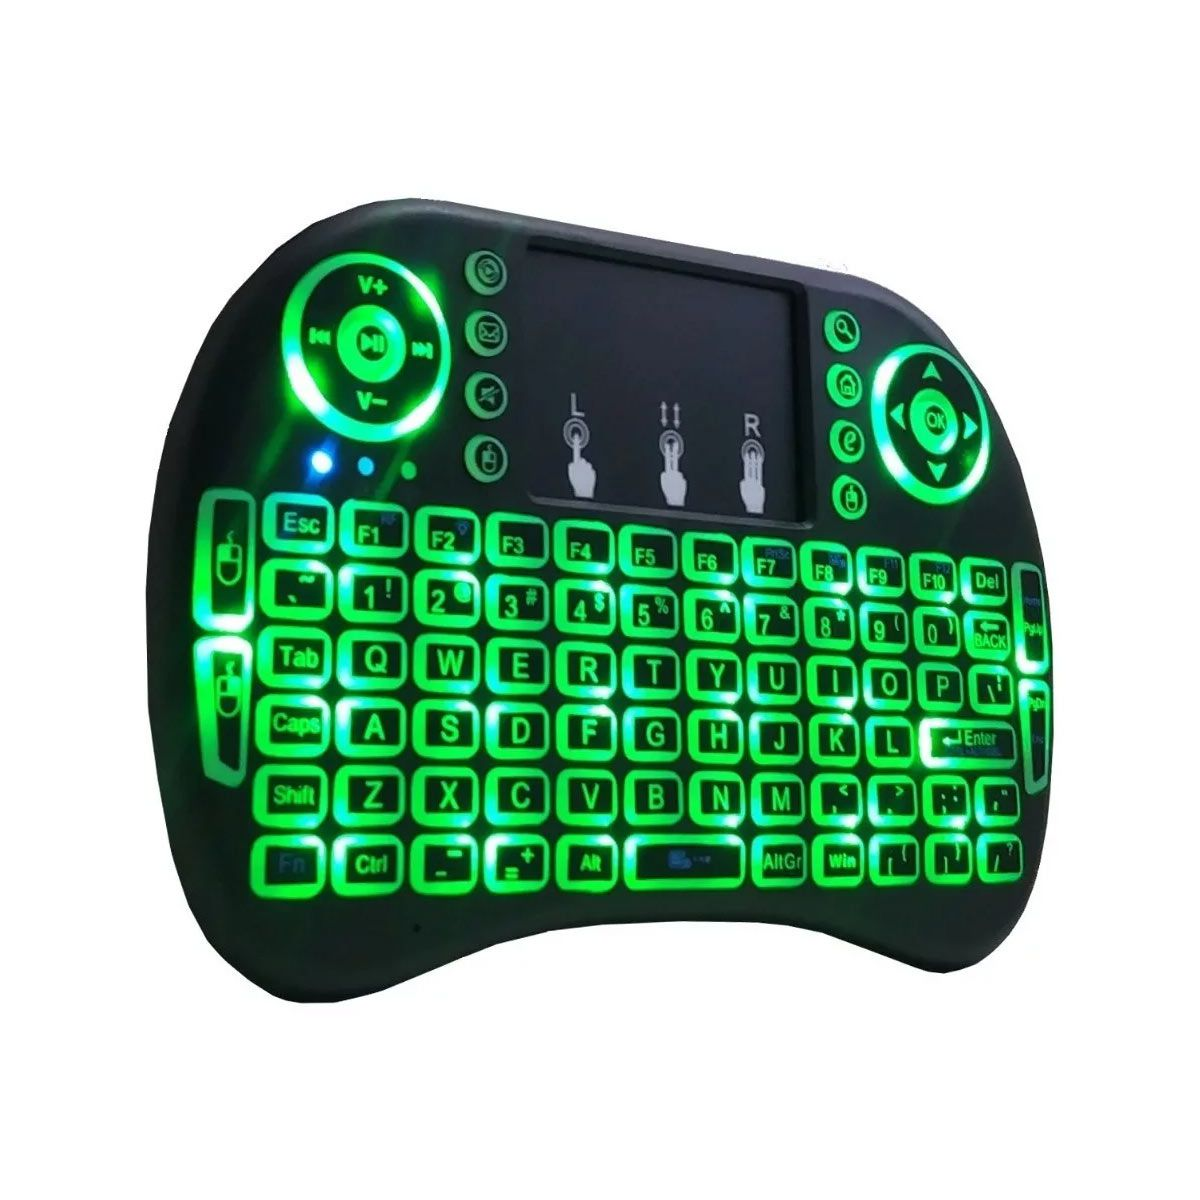 Mini Teclado Touch Pad Keyboard Wireless Led RGB para Raspberry, PC, TV